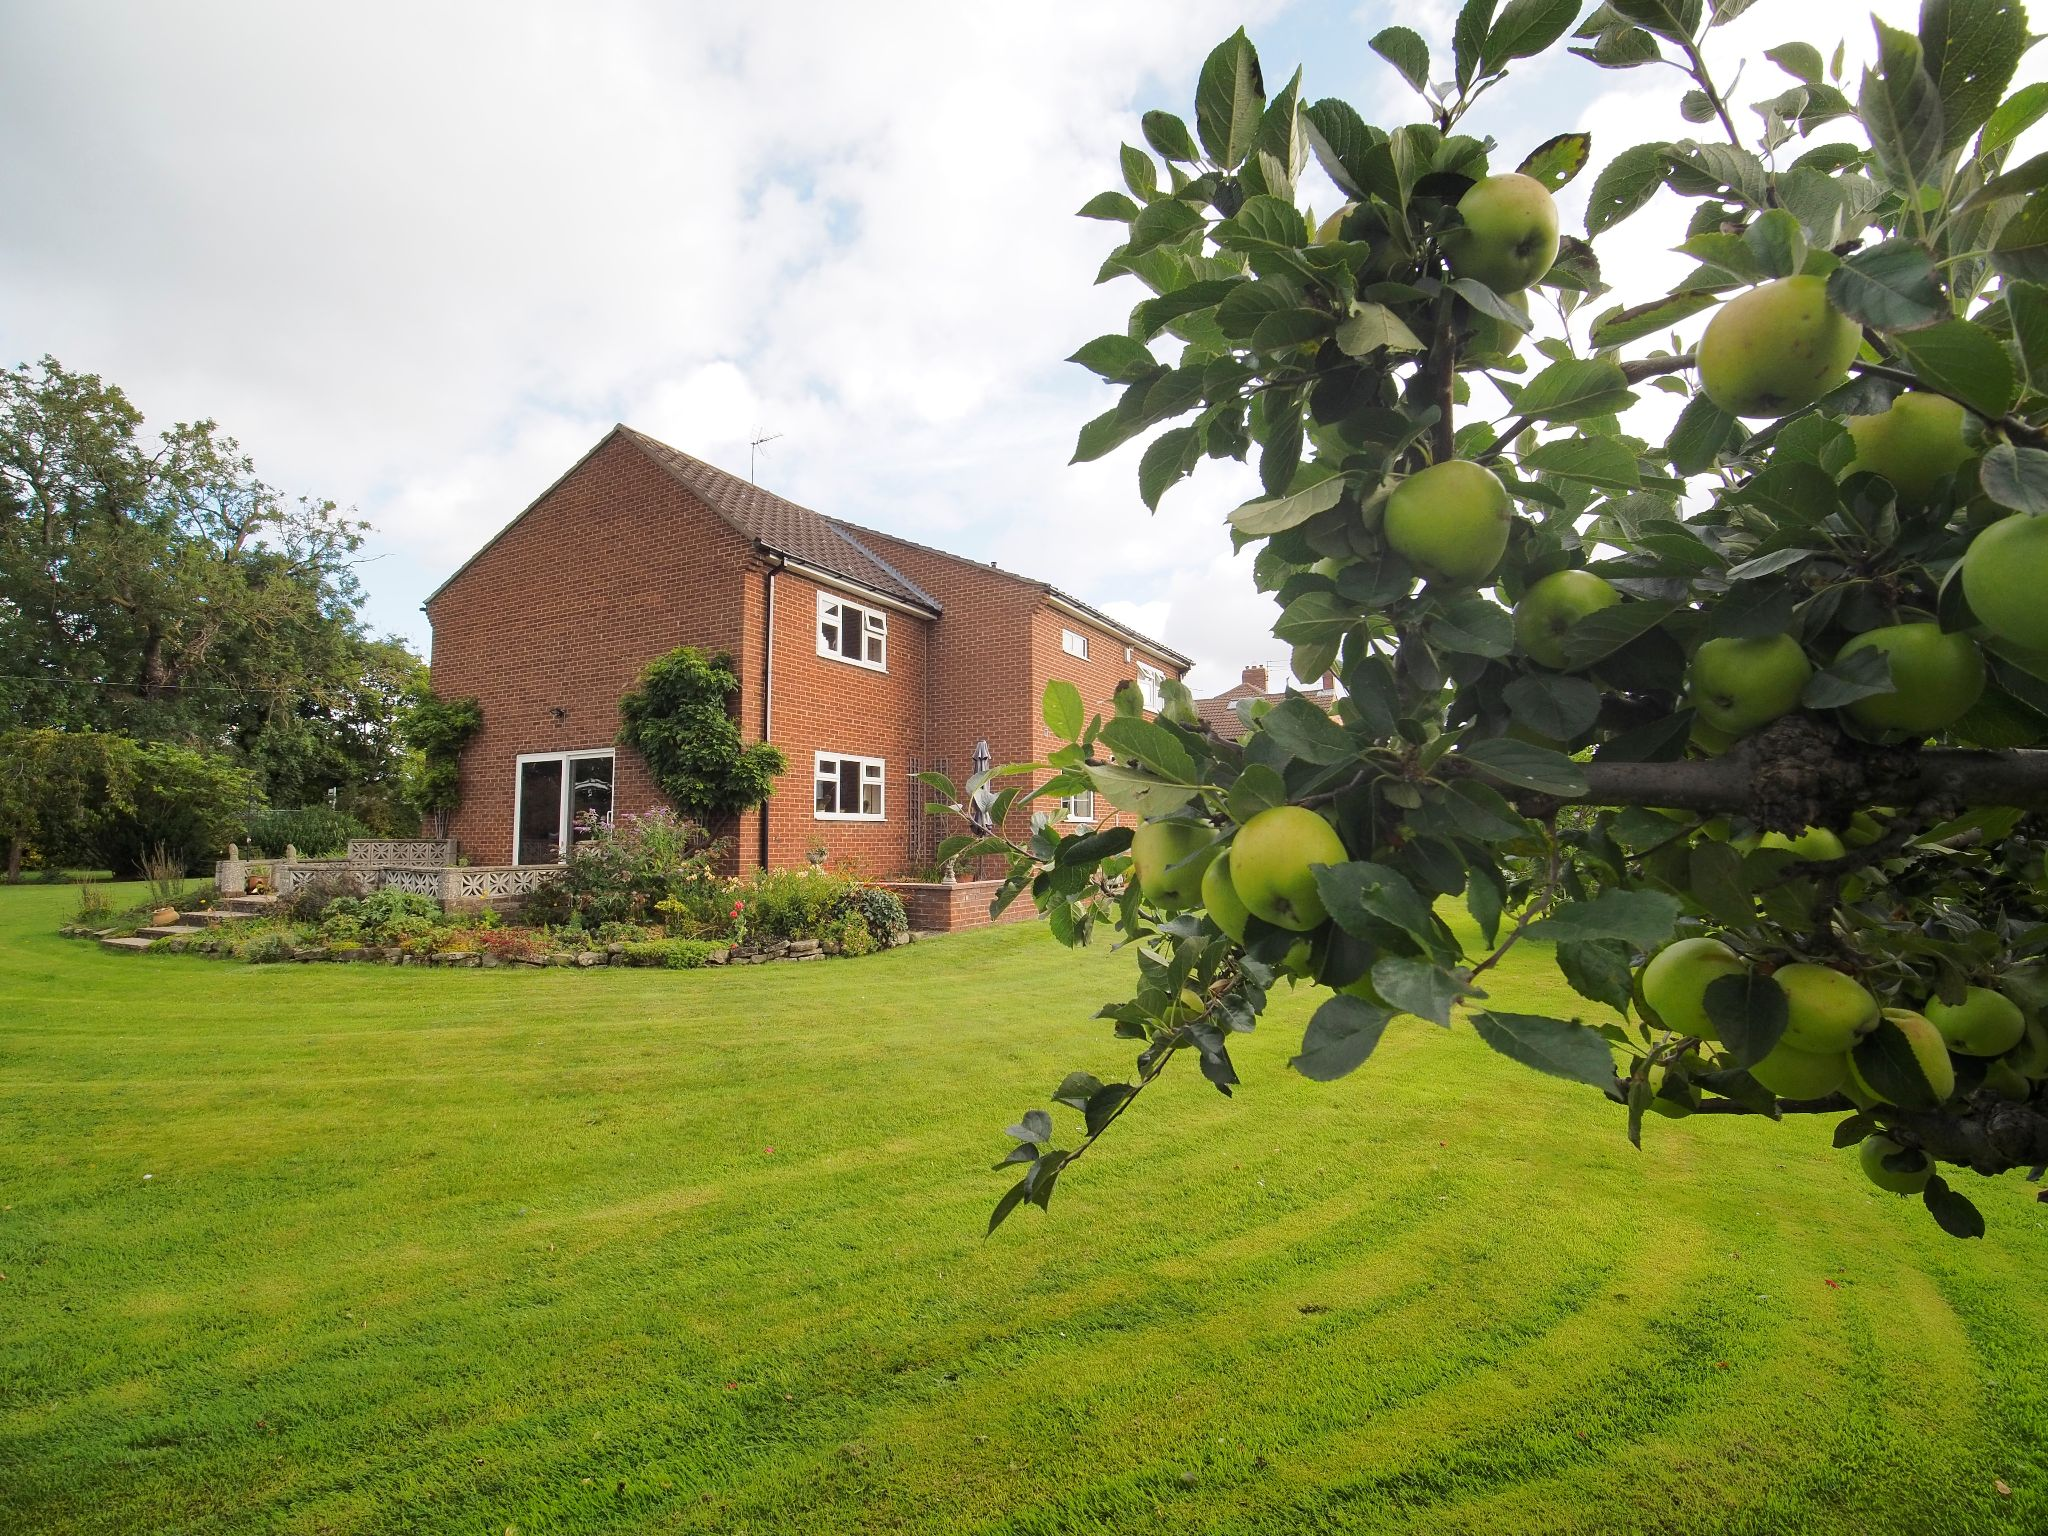 4 bedroom detached house For Sale in Willington - Garden View.